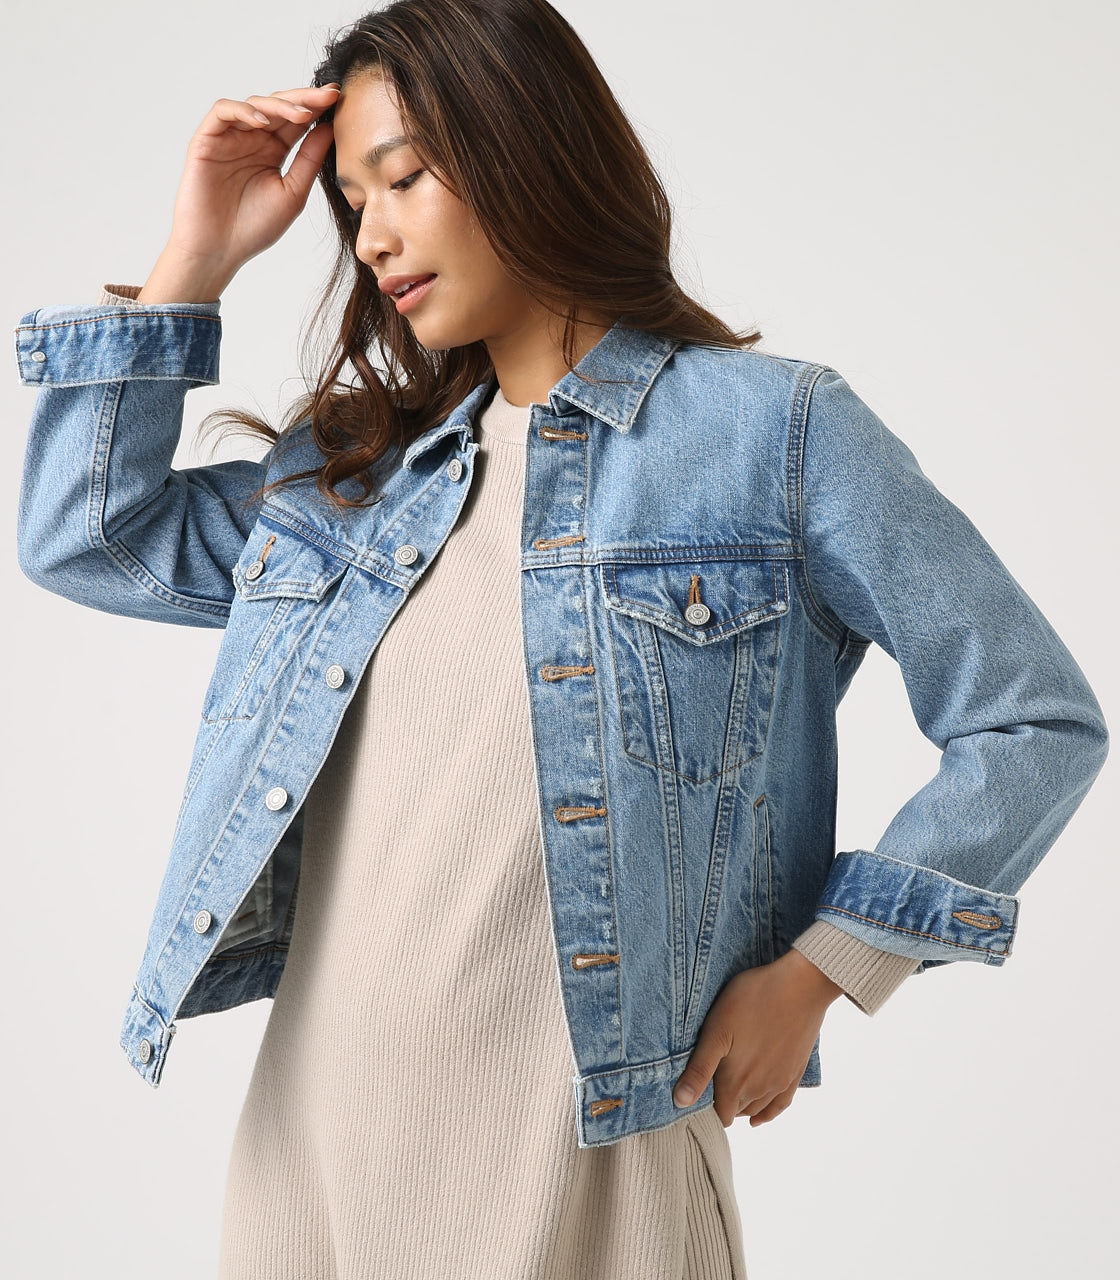 【AZUL BY MOUSSY】DENIM JACKET 詳細画像 L/BLU 2